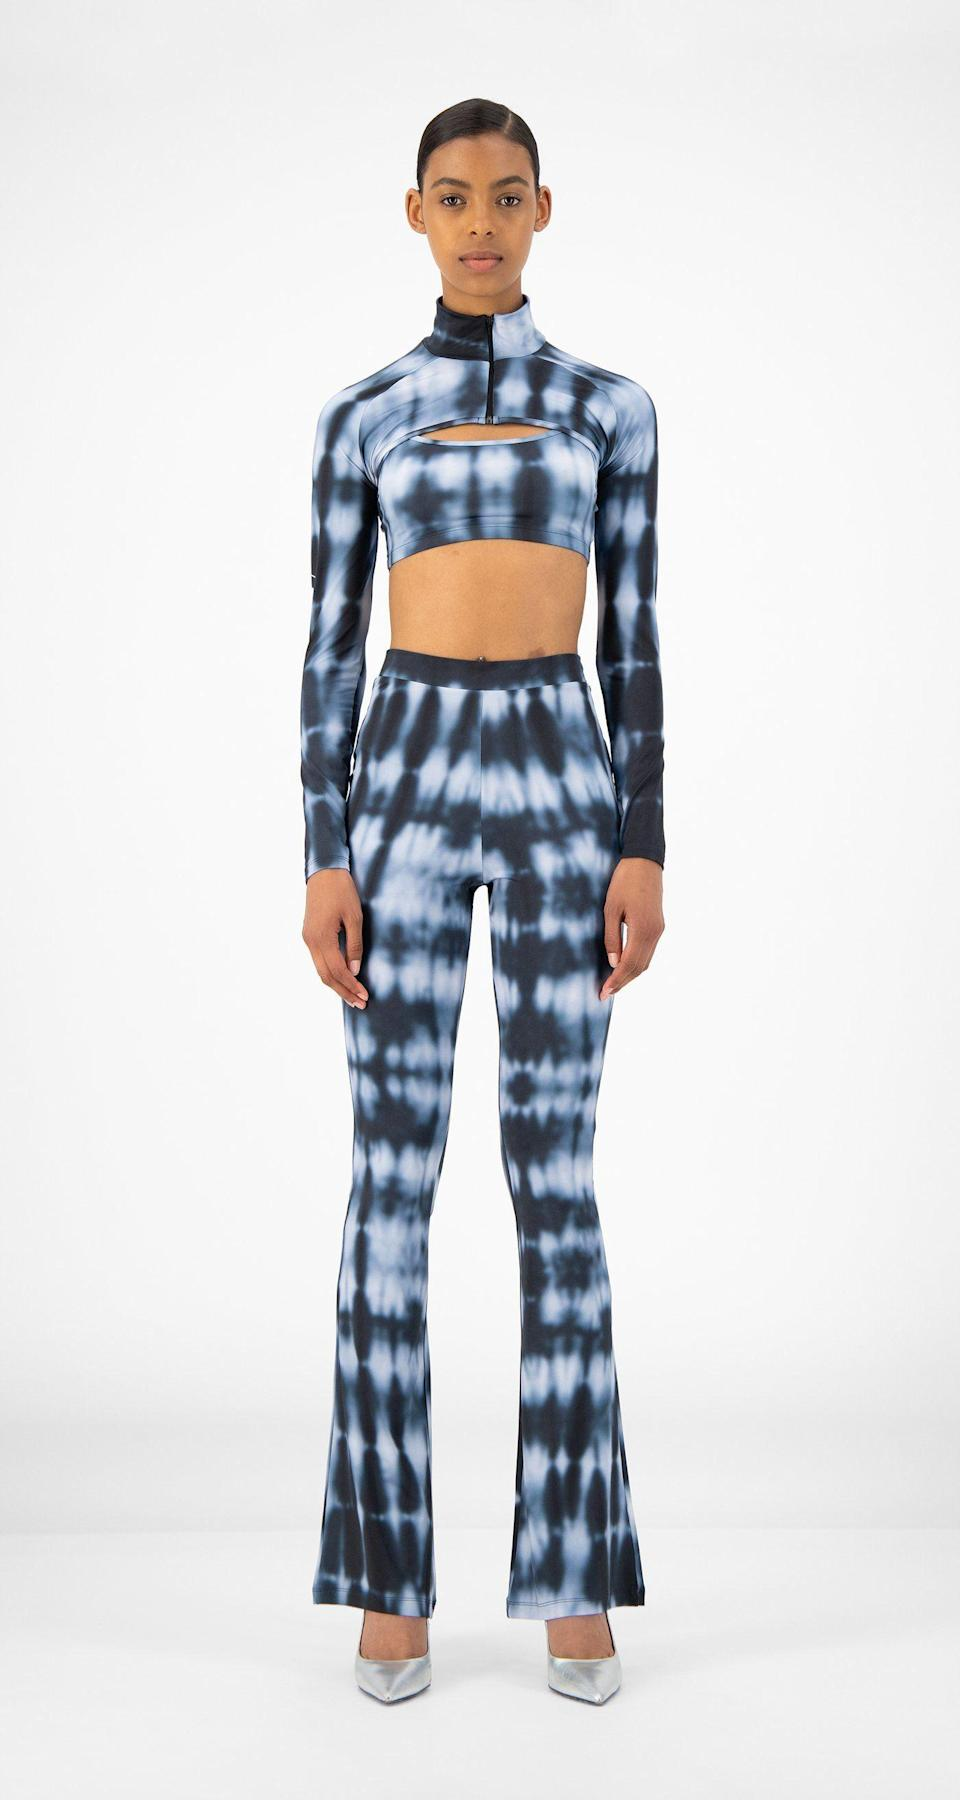 """<p><strong>Daily Paper</strong></p><p>dailypaperclothing.com</p><p><strong>92.00</strong></p><p><a href=""""https://www.dailypaperclothing.com/collections/women-all/products/blue-shibori-reflare-pants?variant=31587368796294"""" rel=""""nofollow noopener"""" target=""""_blank"""" data-ylk=""""slk:Shop Now"""" class=""""link rapid-noclick-resp"""">Shop Now</a></p><p>Choose sleek color combos in streamlined silhouettes to give your tie dye shirt or pants a more sophisticated look. </p>"""